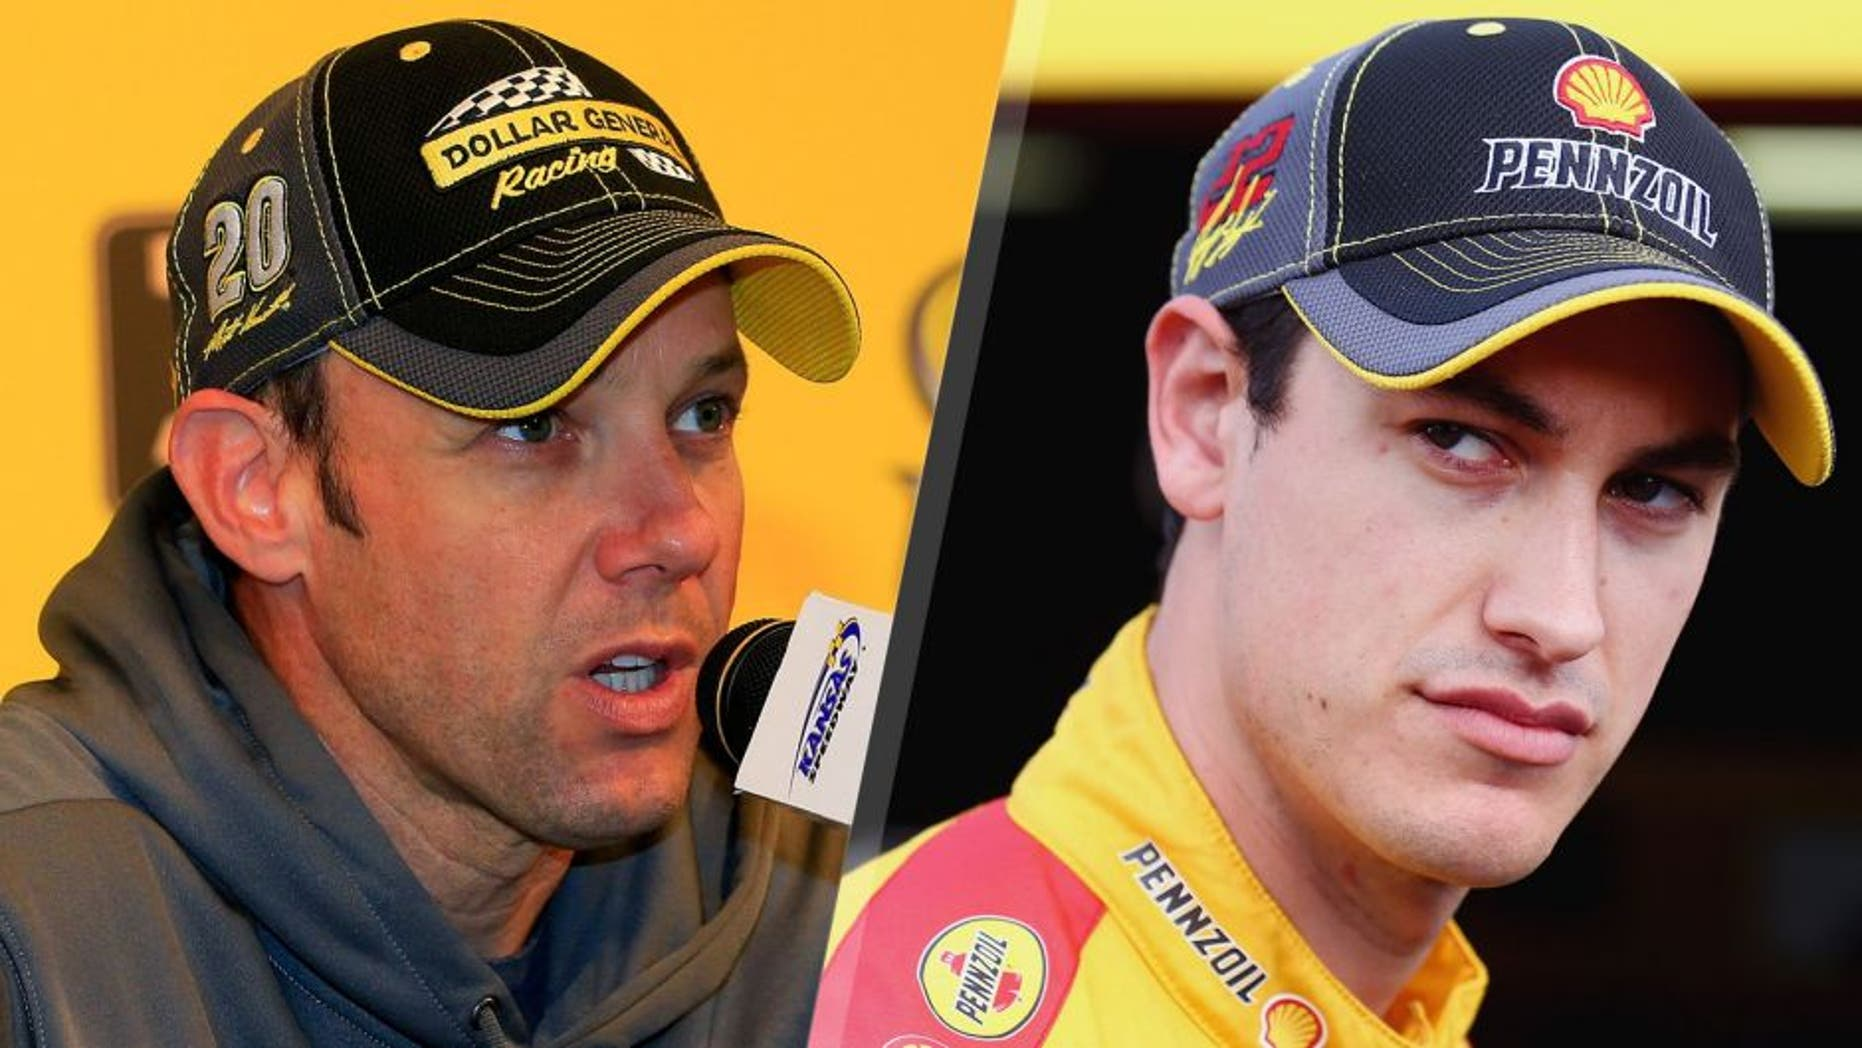 L- KANSAS CITY, KS - OCTOBER 16: Matt Kenseth, driver of the #20 Dollar General Toyota, speaks to the media during a press conference prior to practice for the NASCAR Sprint Cup Series Hollywood Casino 400 at Kansas Speedway on October 16, 2015 in Kansas City, Kansas. (Photo by Chris Trotman/NASCAR via Getty Images) R- TALLADEGA, AL - OCTOBER 23: Joey Logano, driver of the #22 Shell Pennzoil Ford, stands in the garage area during practice for the NASCAR Sprint Cup Series CampingWorld.com 500 at Talladega Superspeedway on October 23, 2015 in Talladega, Alabama. (Photo by Tom Pennington/Getty Images)